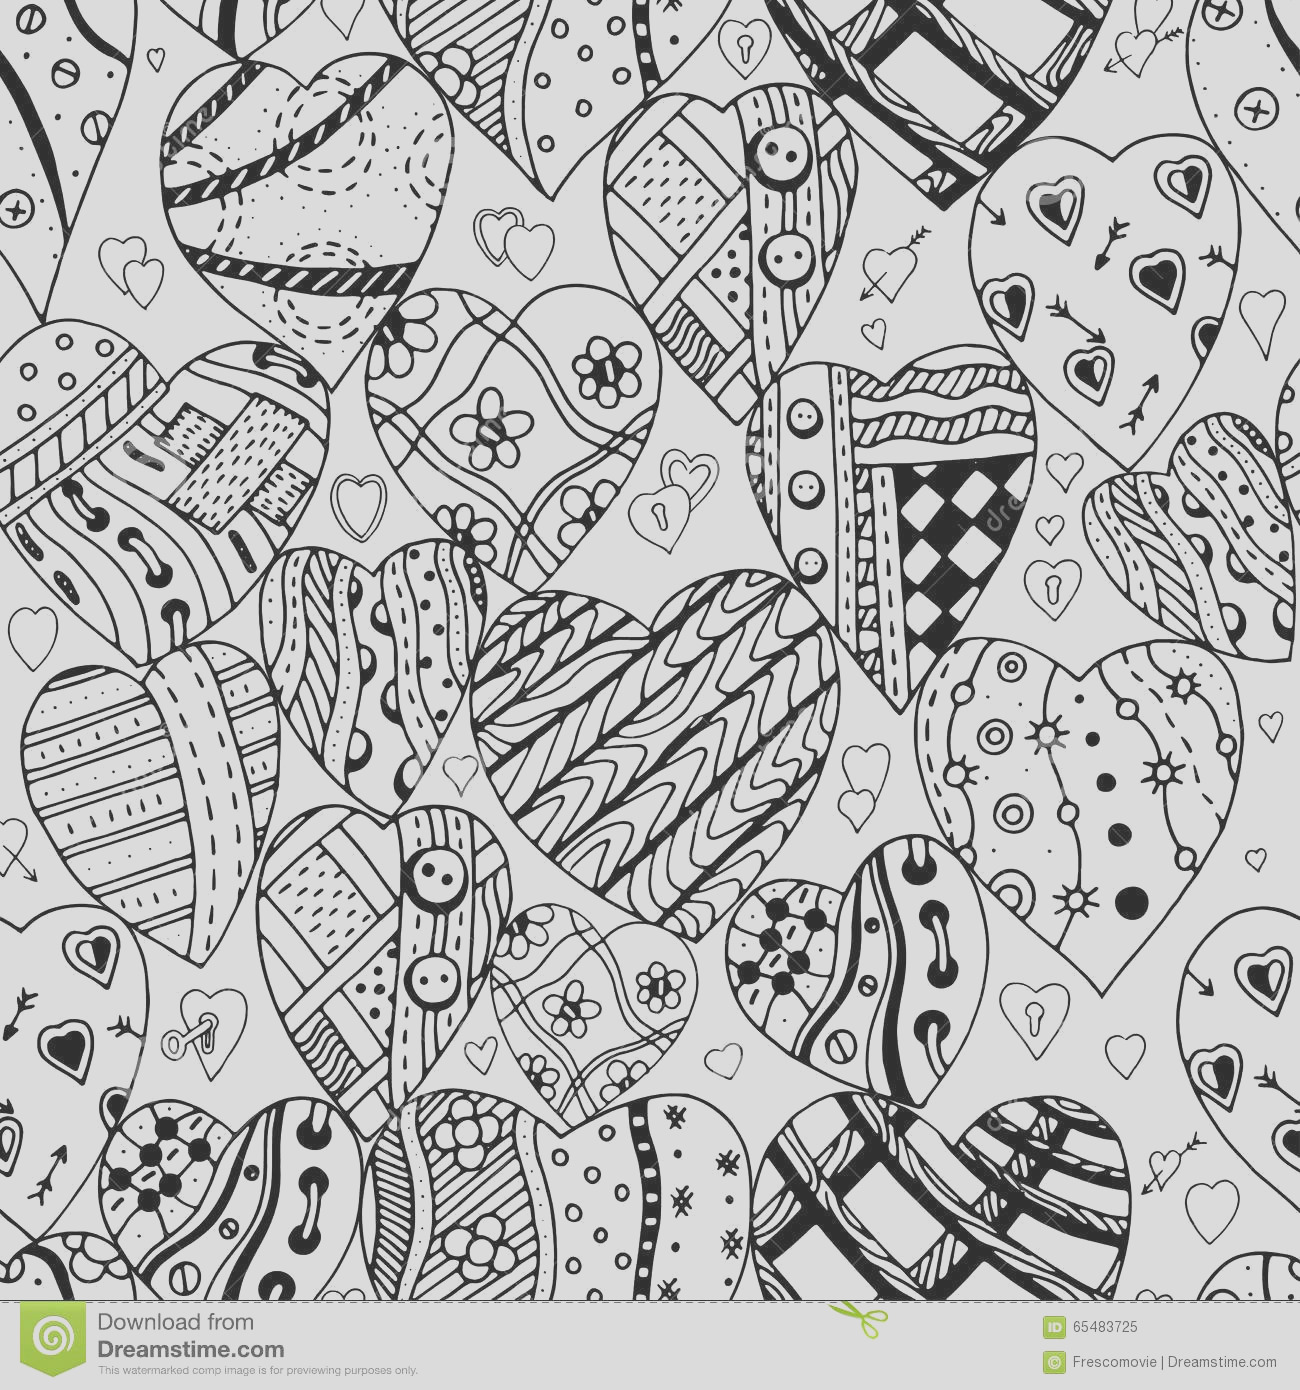 stock illustration pattern monochrome hearts hand drawn ornamental heart love doodle zentangle tribal style seamless adult coloring image